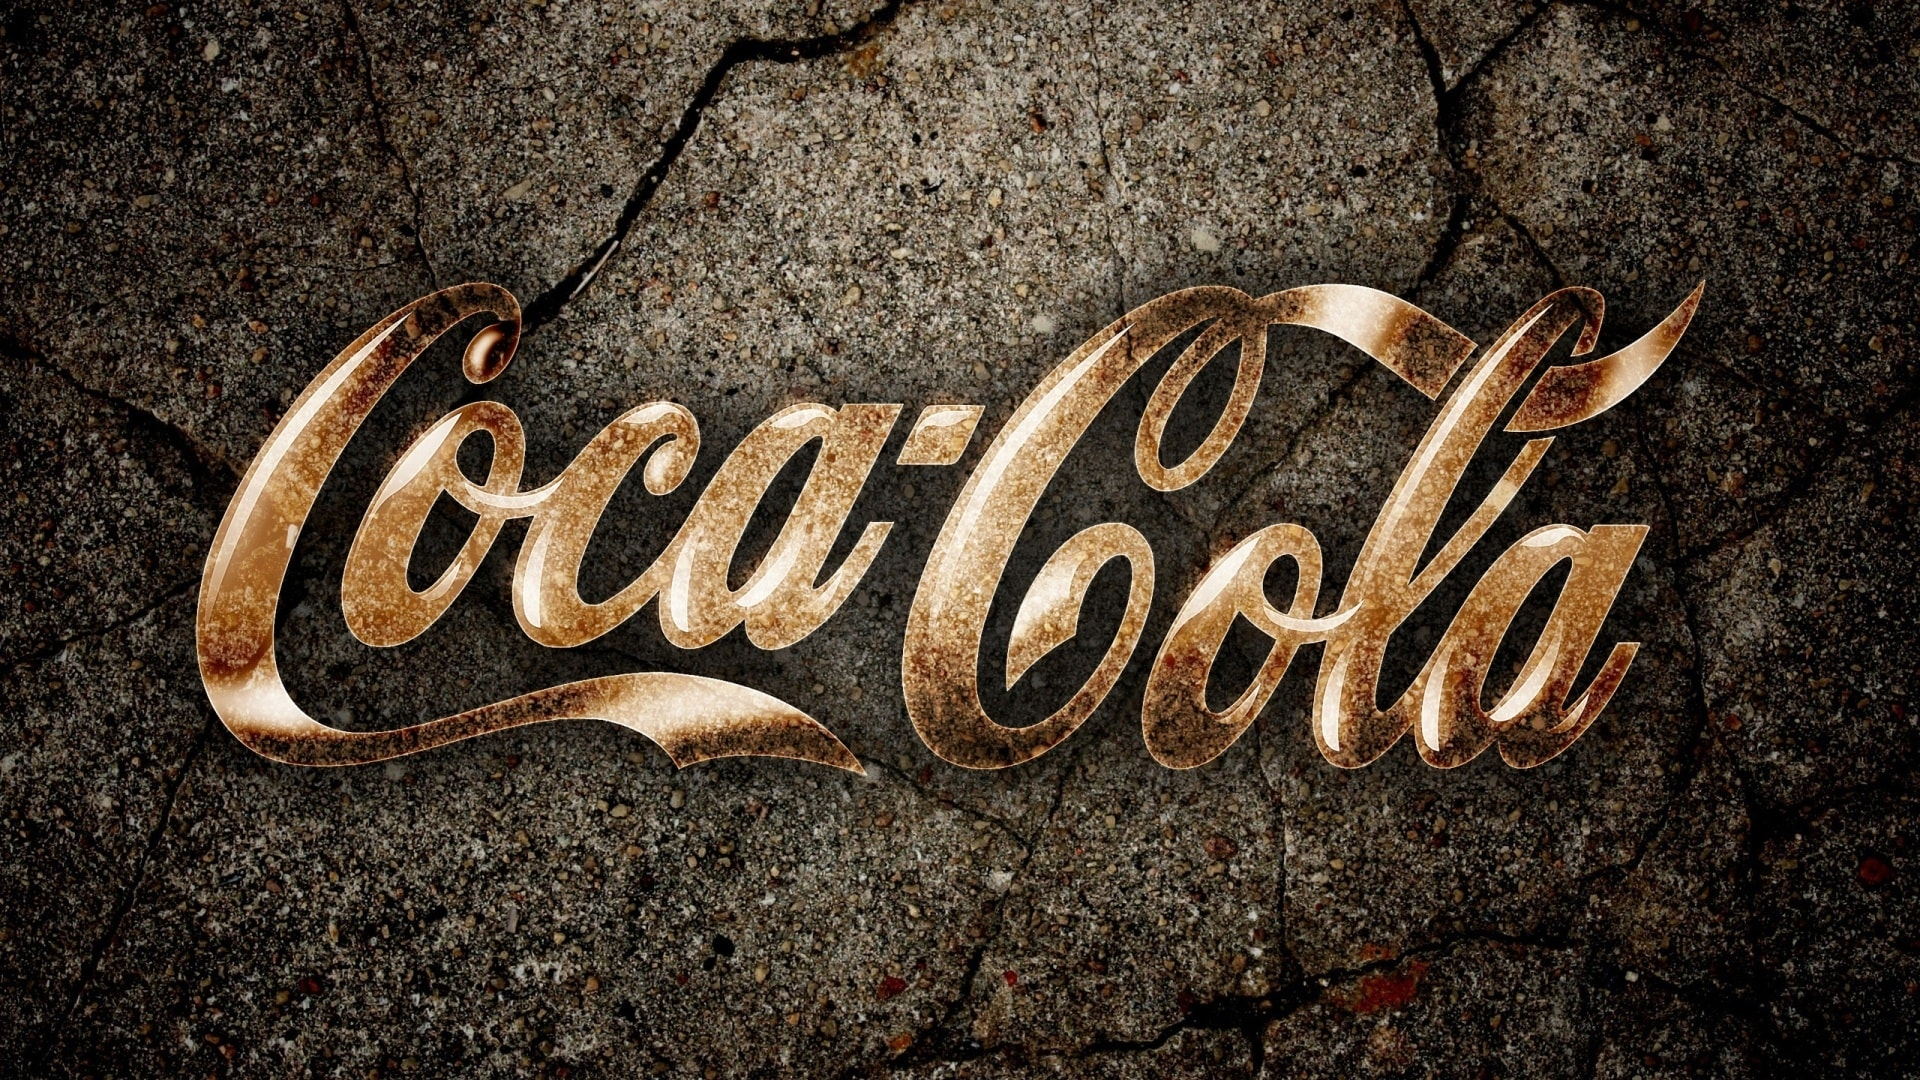 Coca-Cola Desktop wallpaper